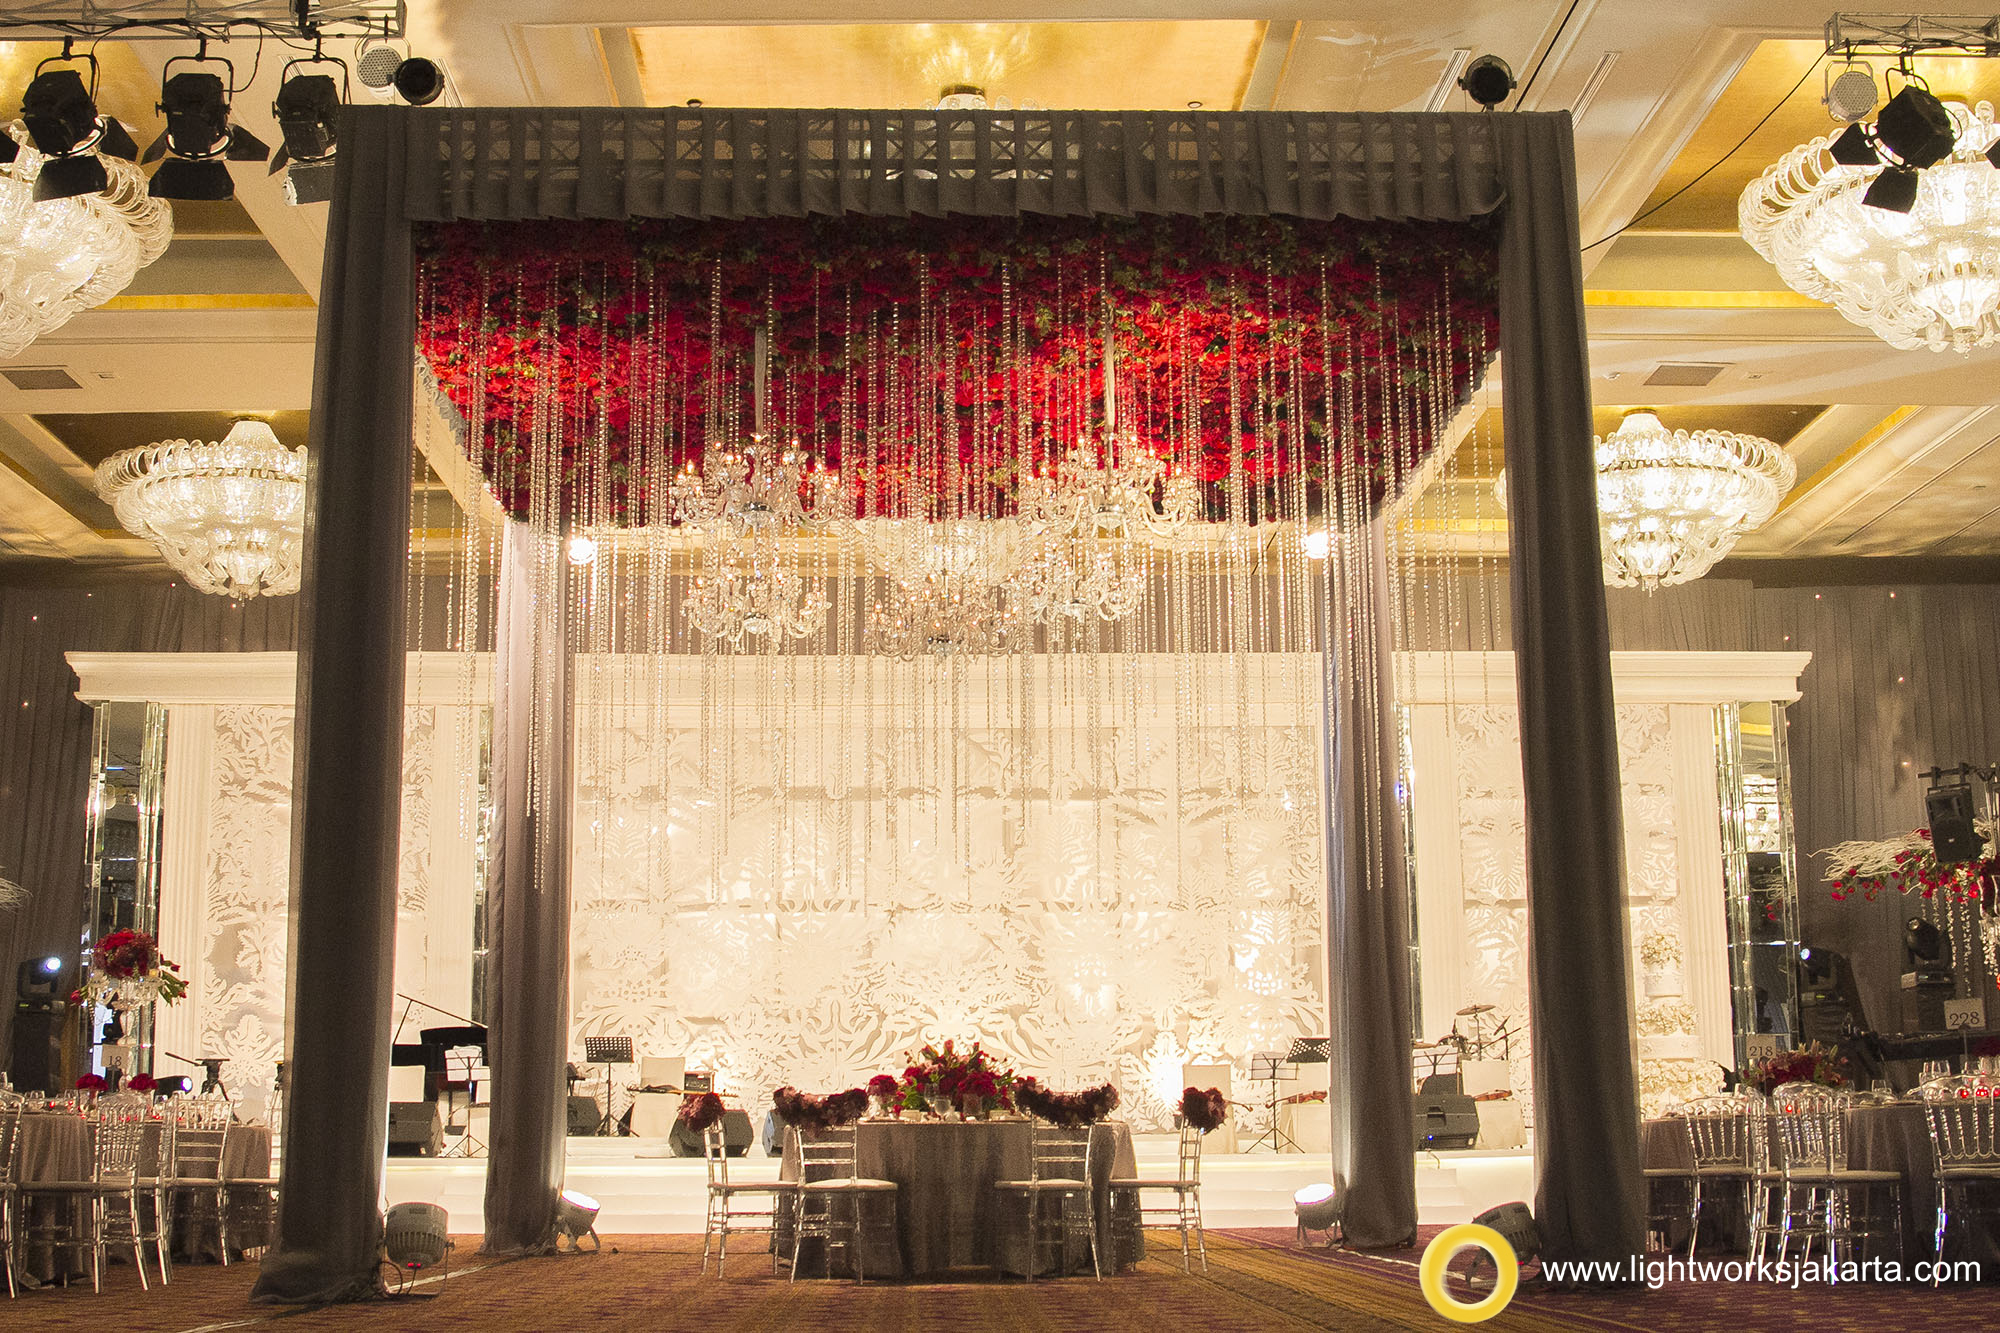 Silver Wedding Anniversary of Martias and Silvia; Venue at Mulia Hotel; Organized by Multi Kreasi Enterprise (MKE); Decoration by Nefi Decor; Lighting by Lightworks